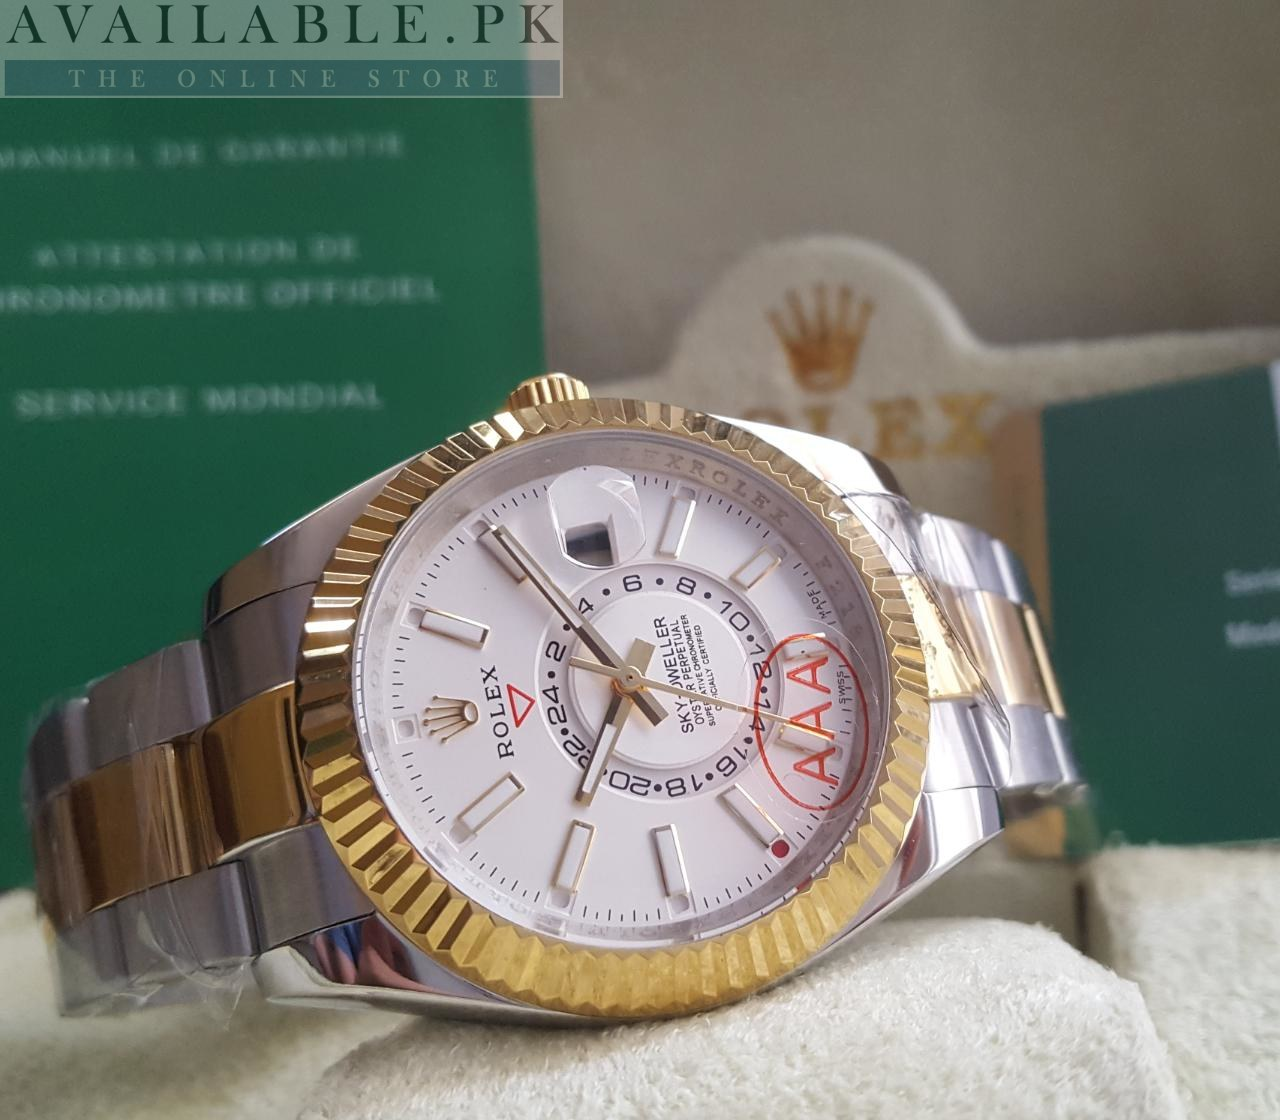 Rolex Sky Dweller Dual Tone White Dial Double Time Watch